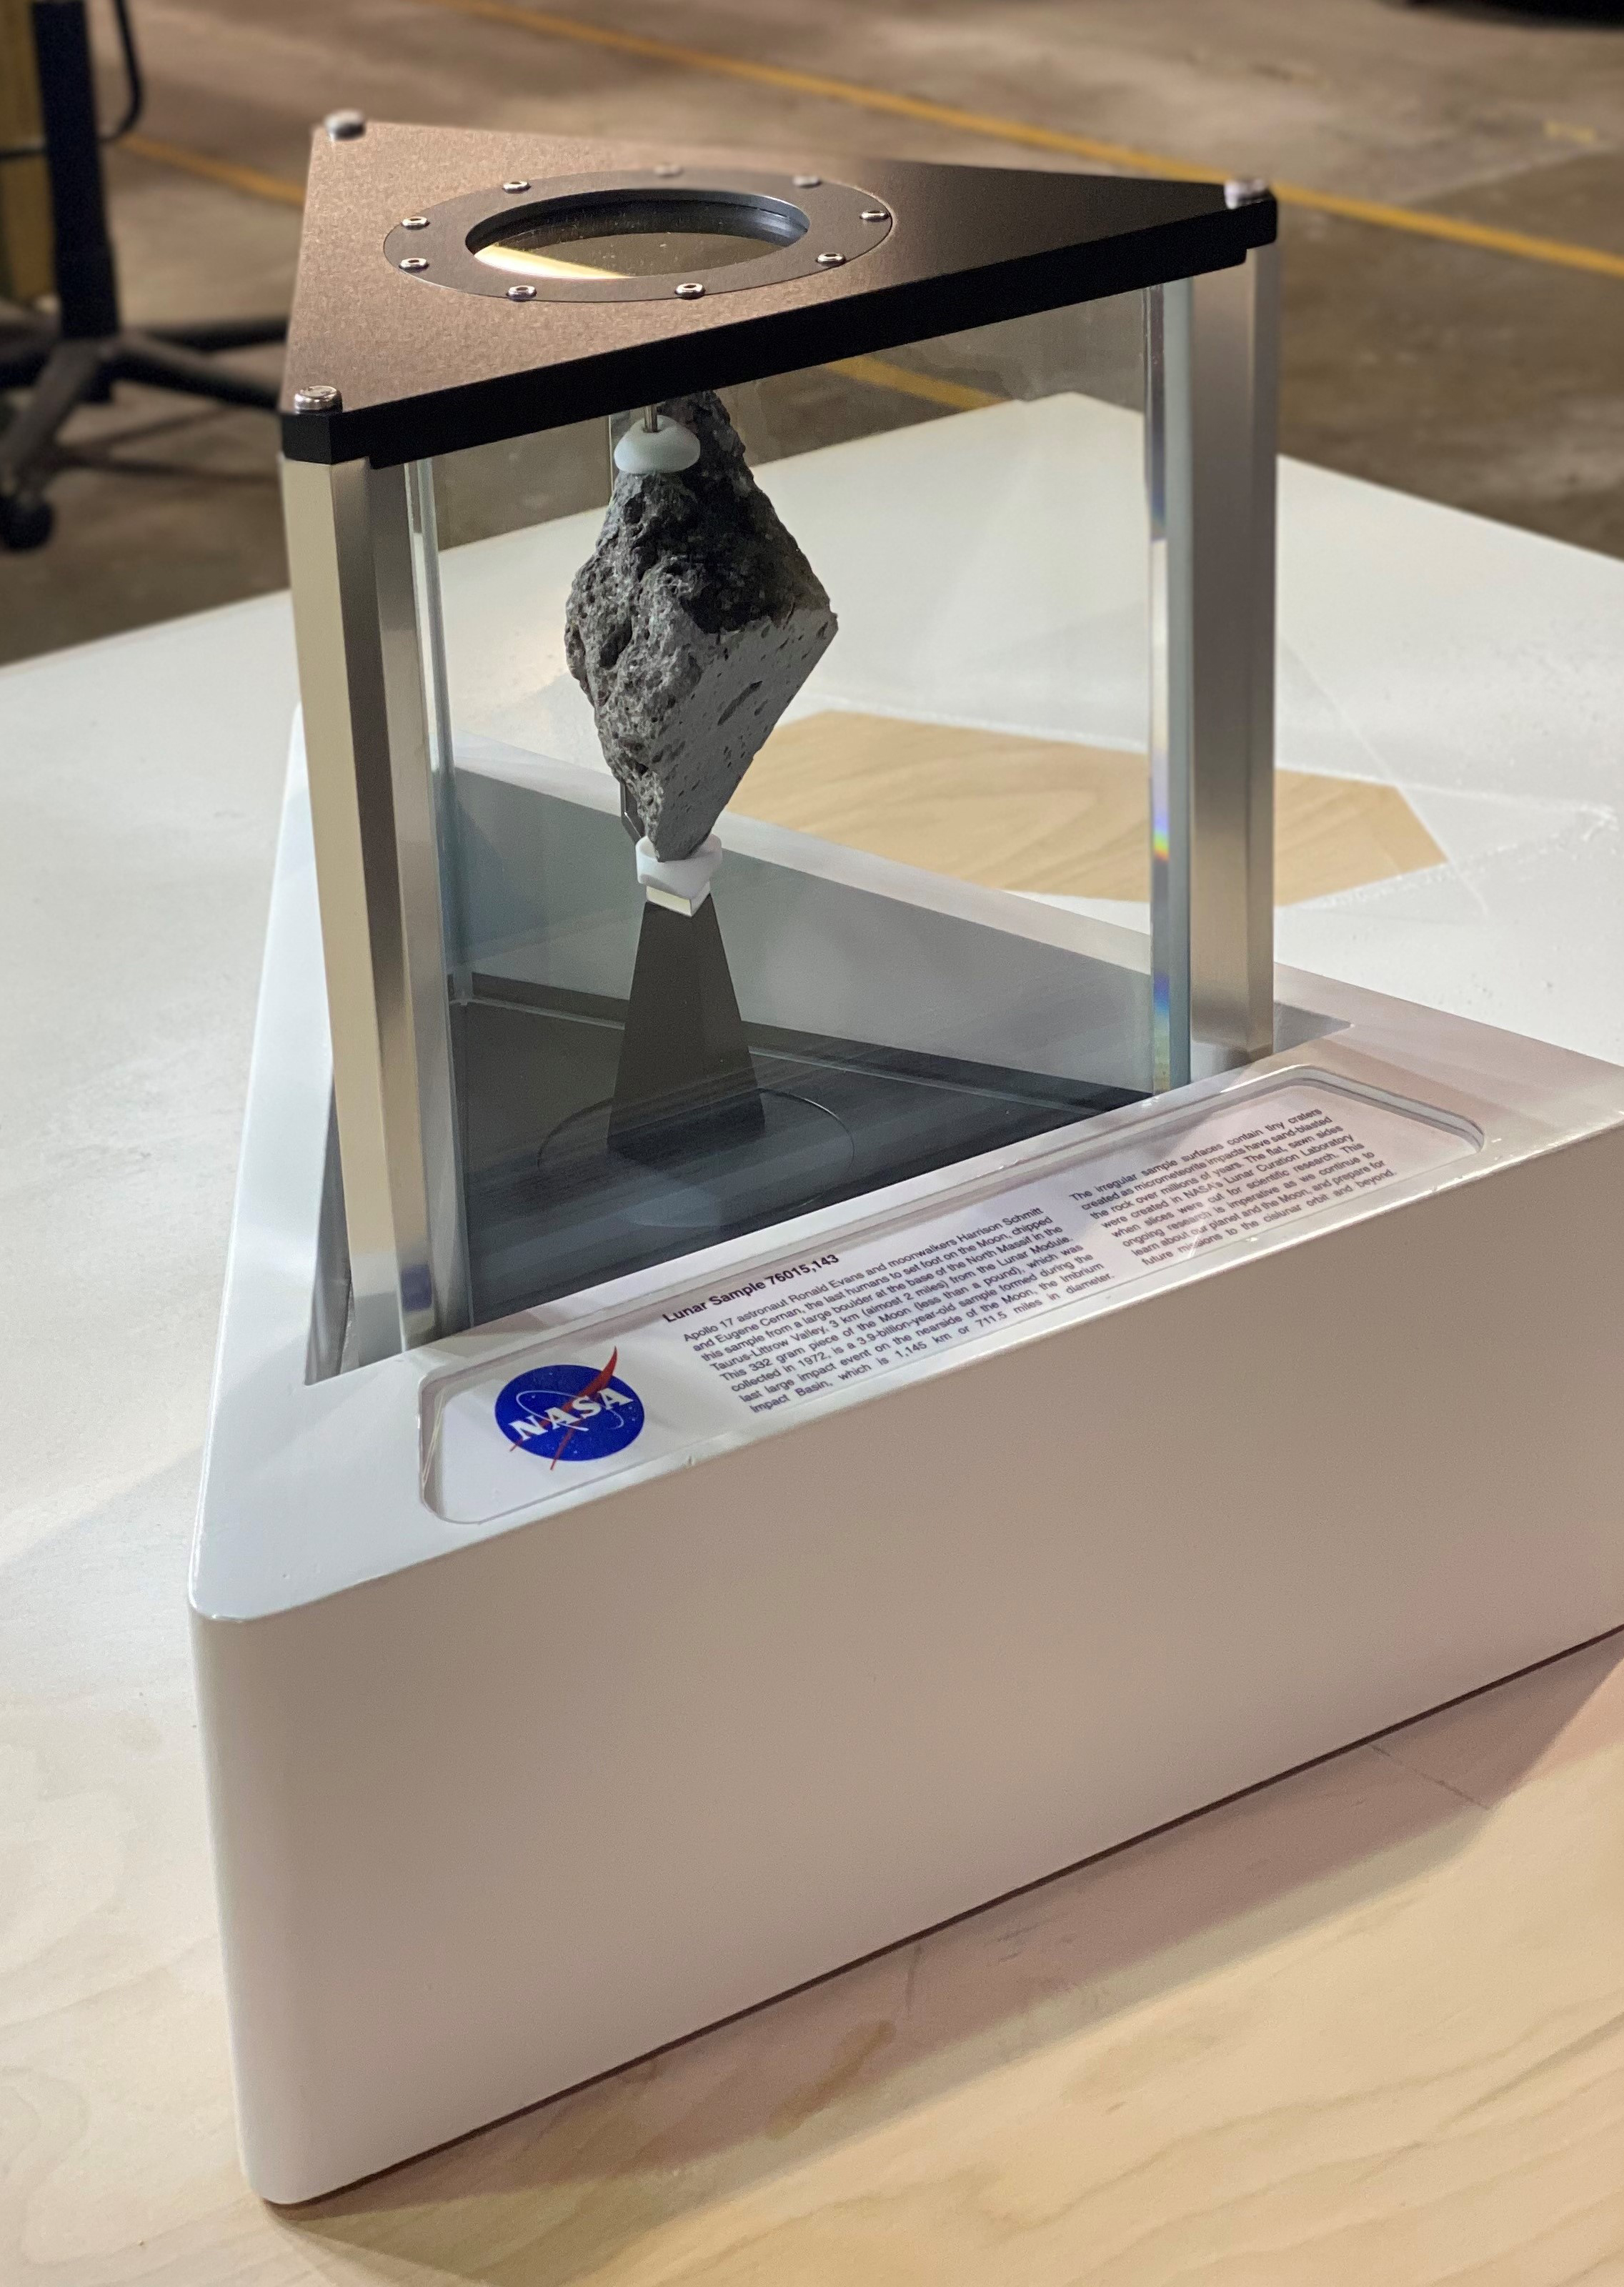 NASA Lends Moon Rock for Oval Office Display